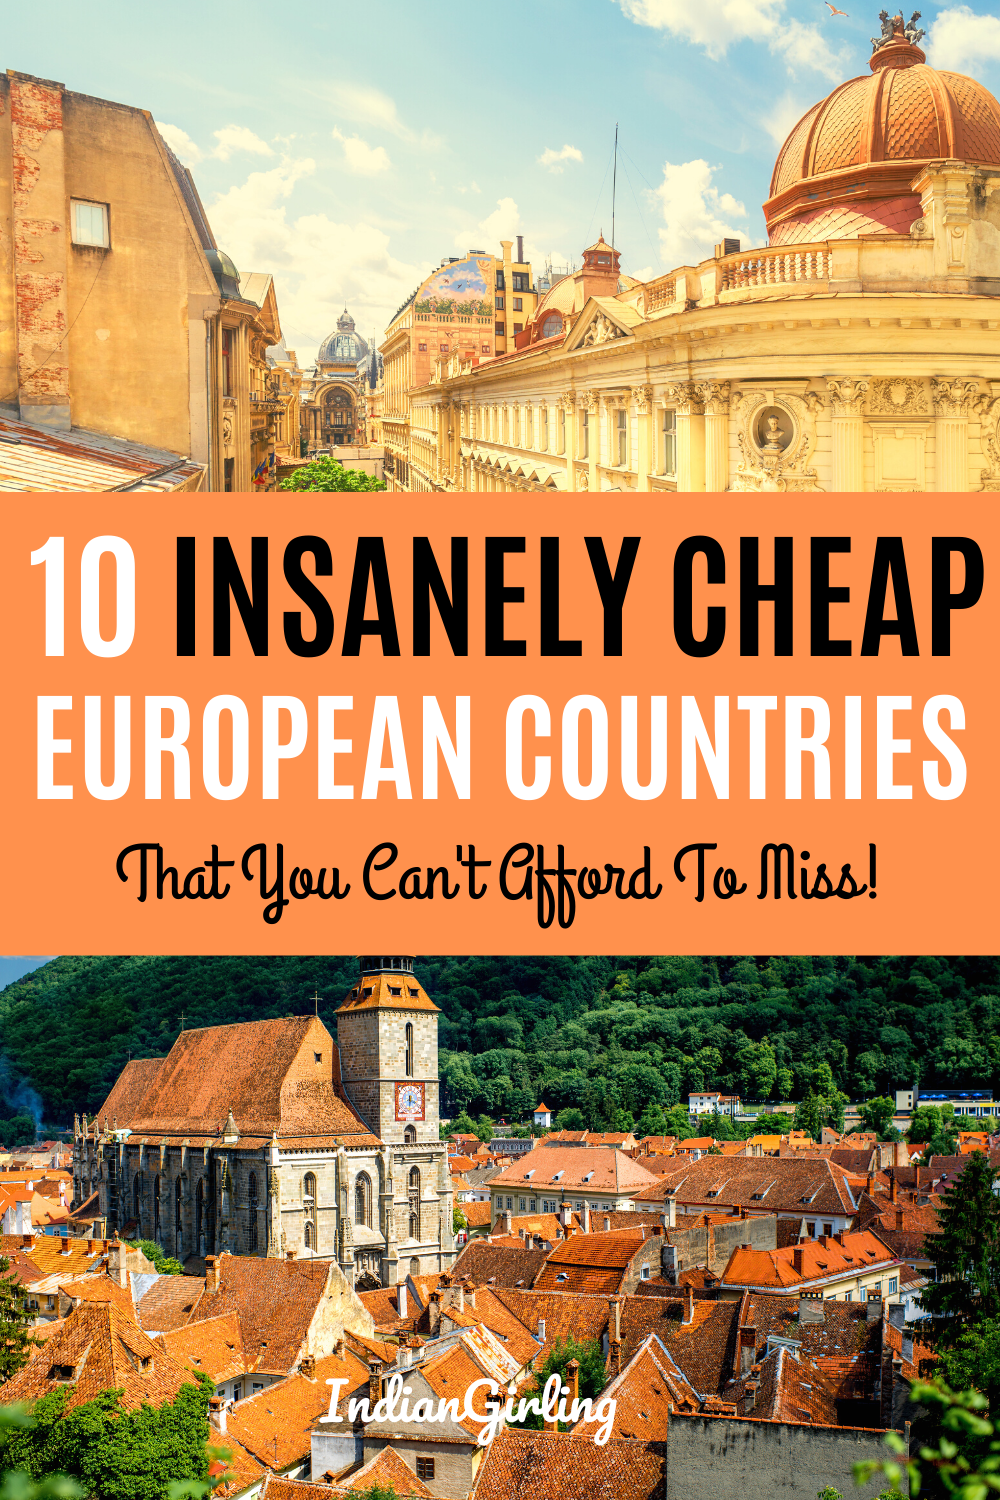 10 Insanely Cheap European Countries To Visit On A Budget